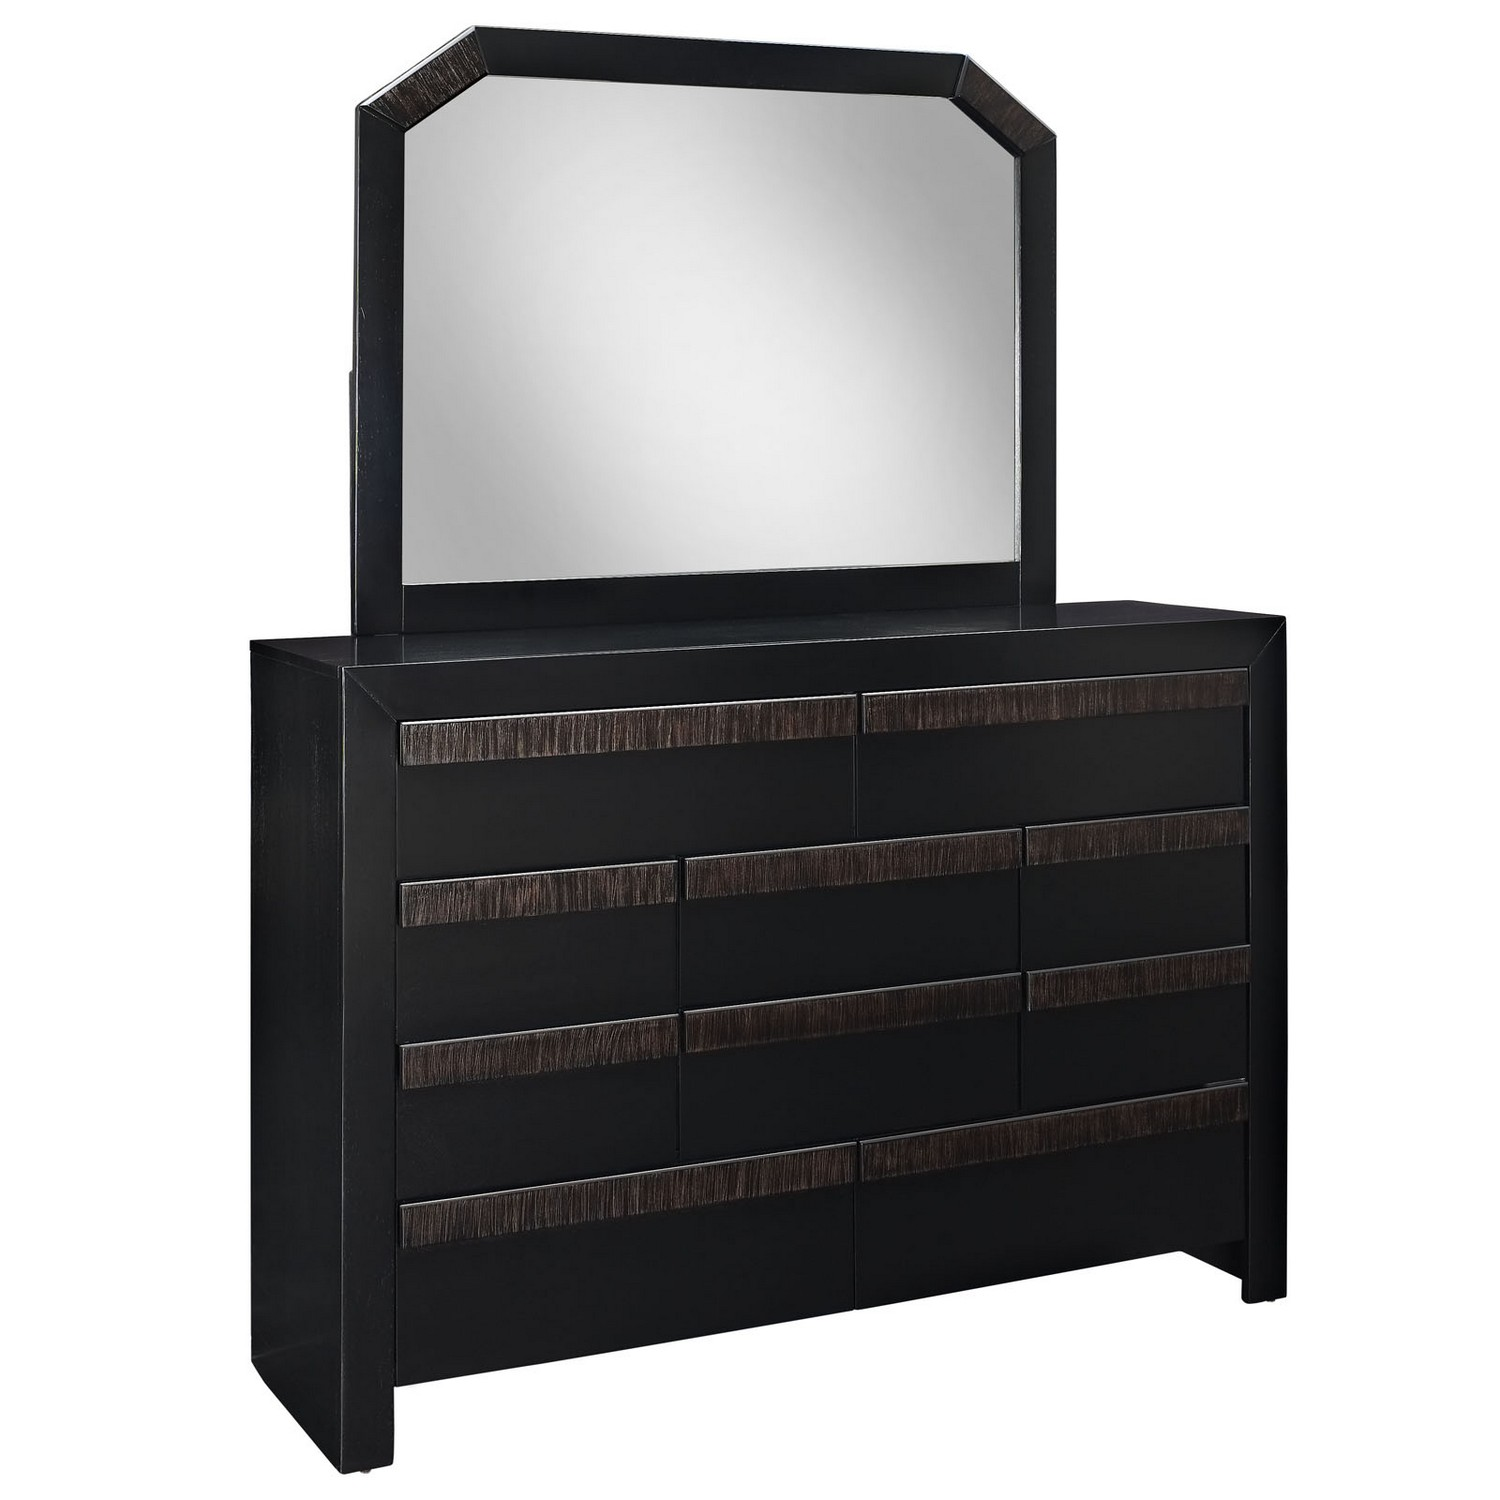 Modway Tommy Wood Dresser and Mirror - Black